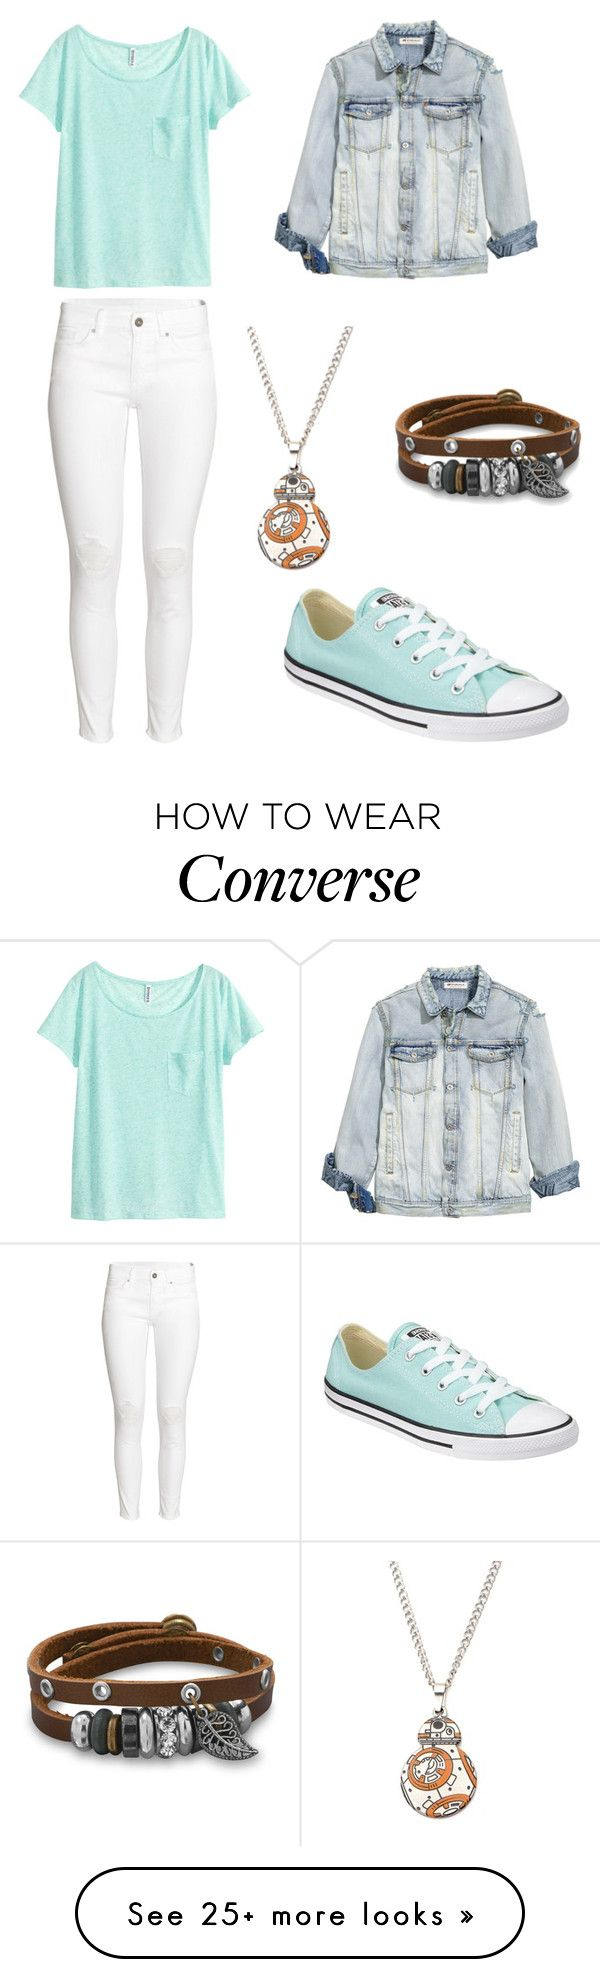 """""""Untitled #303"""" by angela229 on Polyvore featuring H&M, Converse and BillyTheTree"""